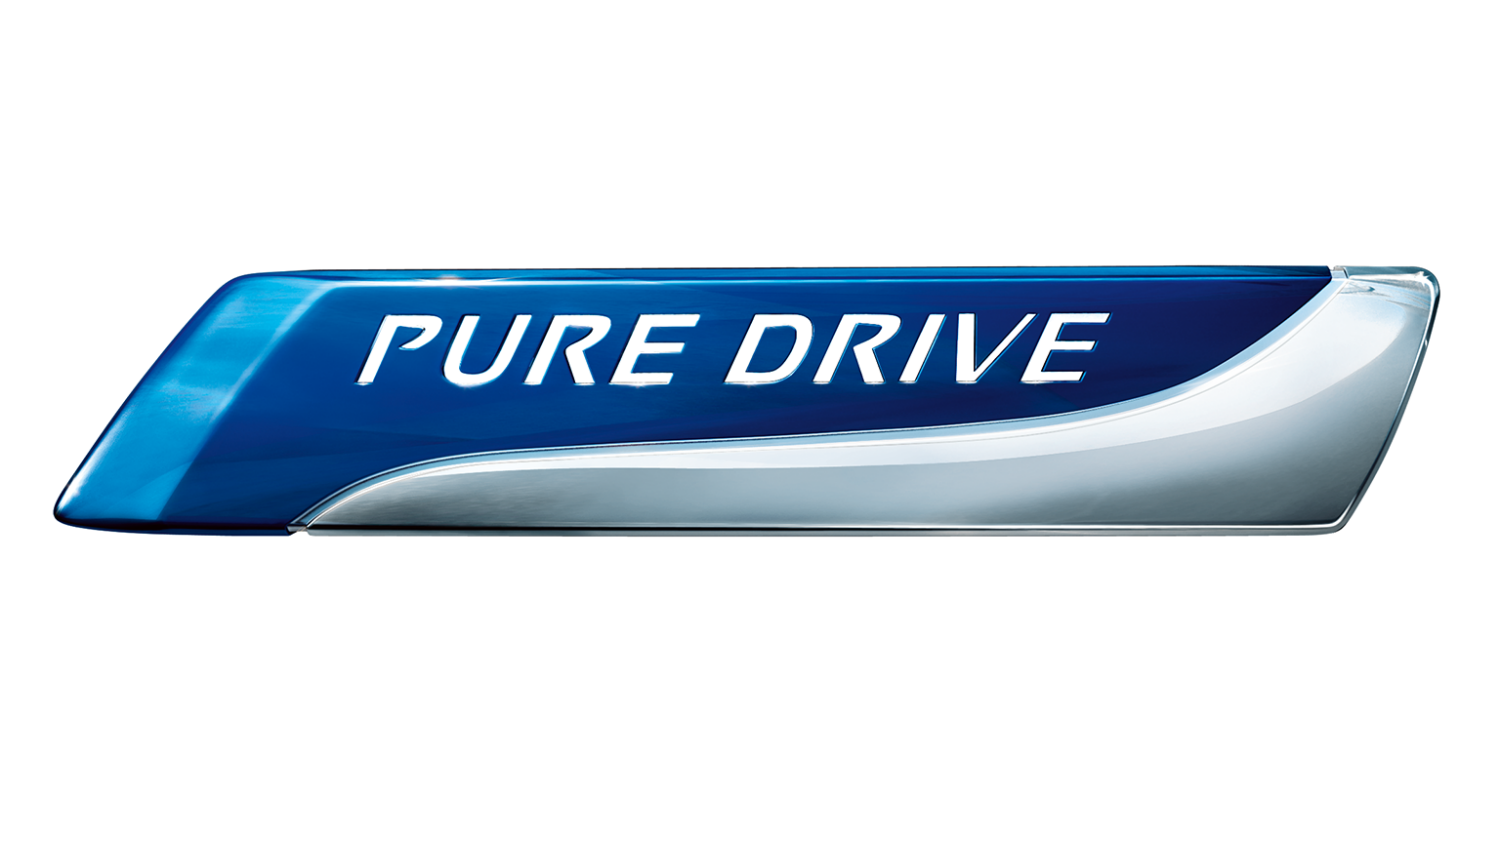 Nissan Micra - Pure Drive badge